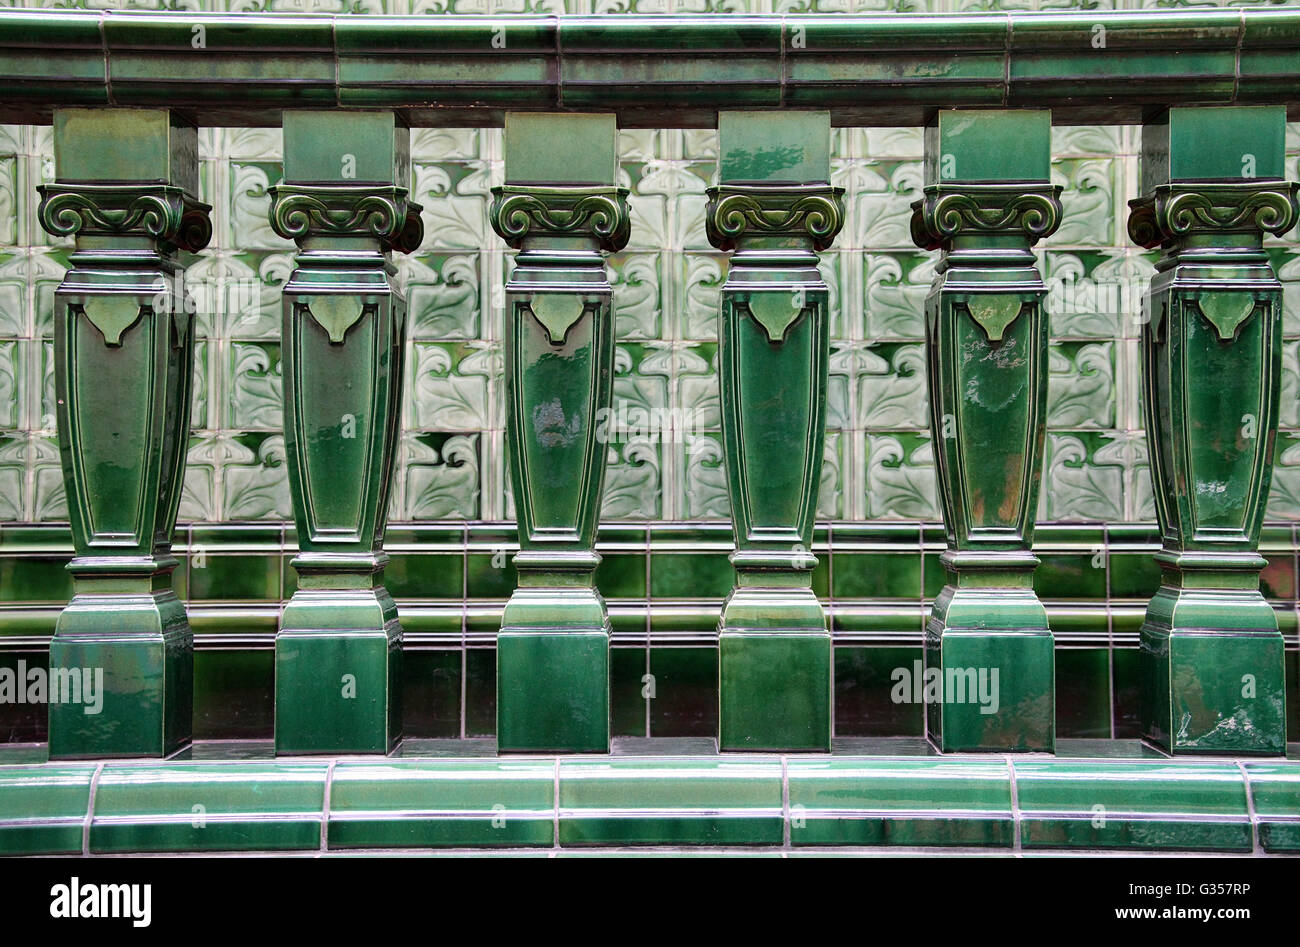 Art Nouveau Pilkington tiles at the historic Victoria Baths in Manchester - Stock Image